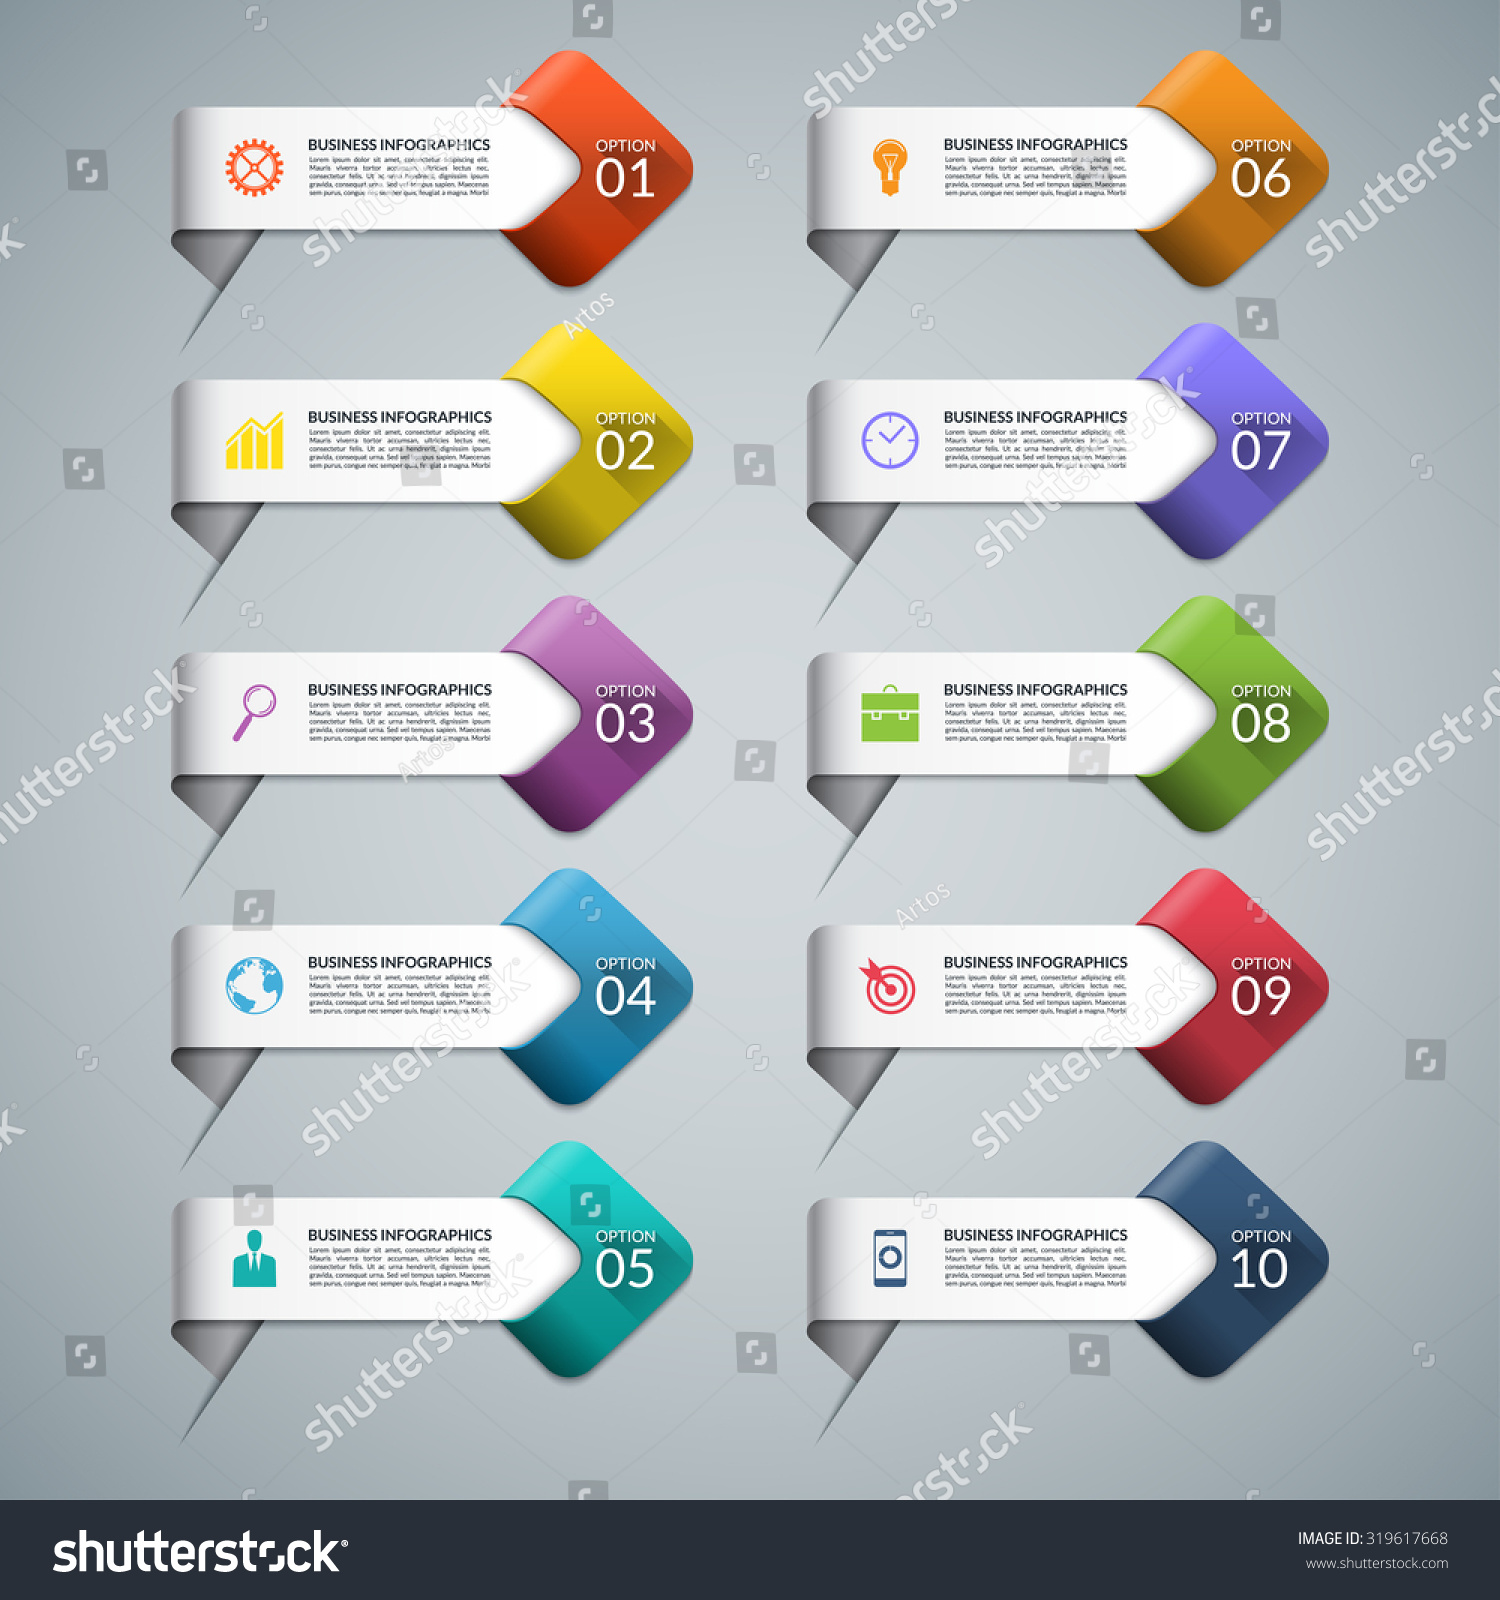 Set Infographic Arrows Business Marketing Icons Stock Photo (Photo ...